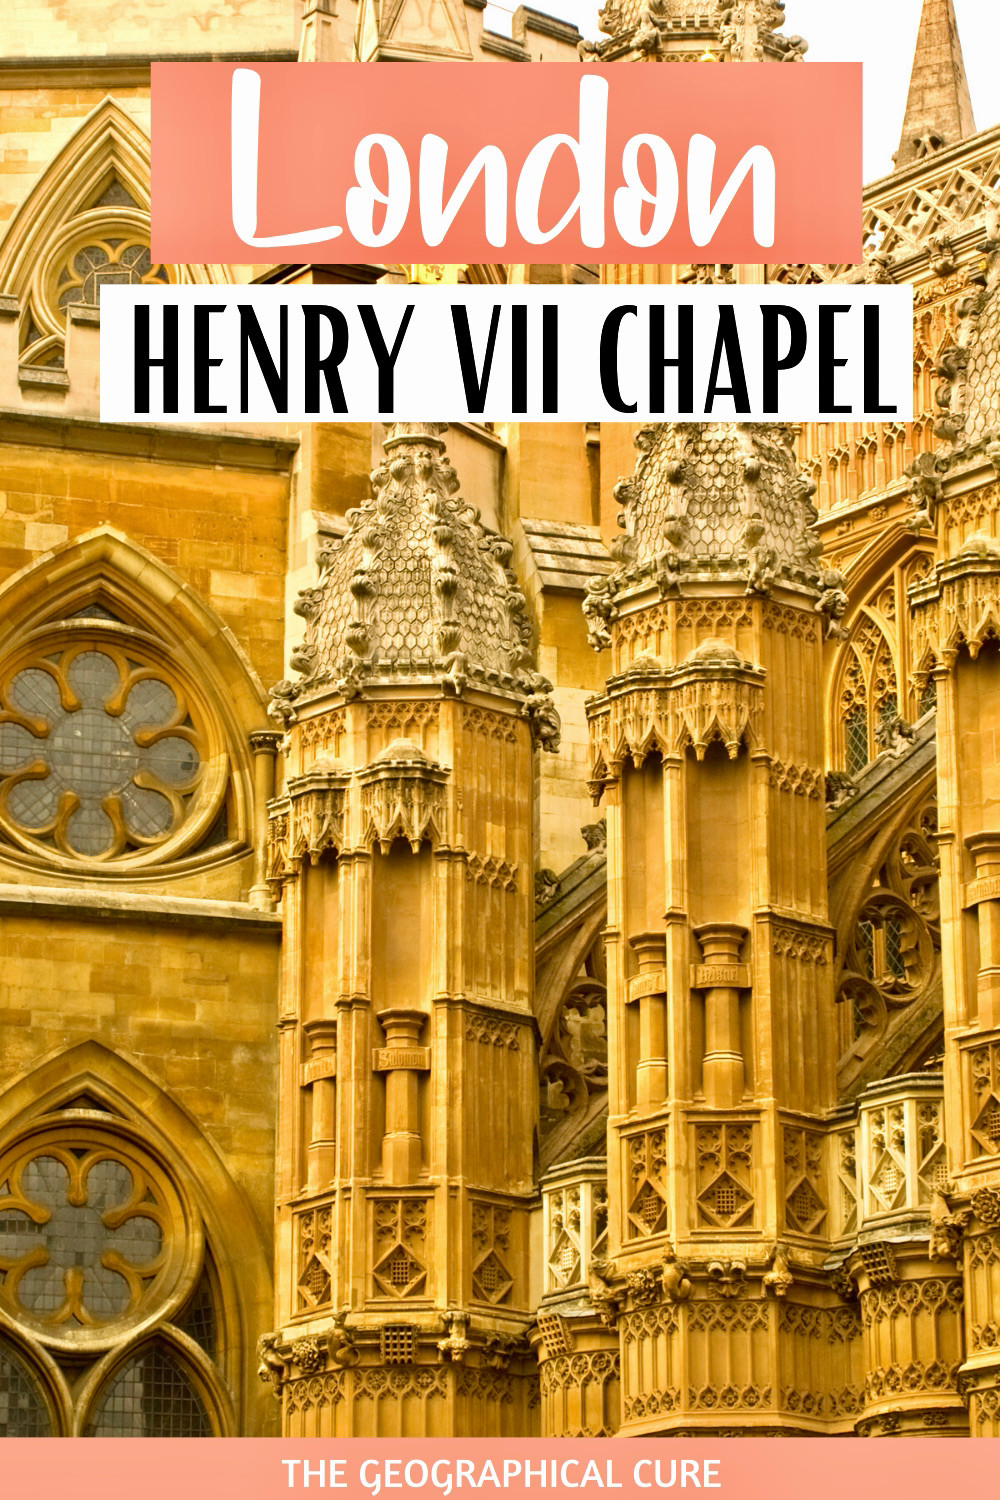 visitor's guide to the Henry VII Chapel in London's Westminster Abbey